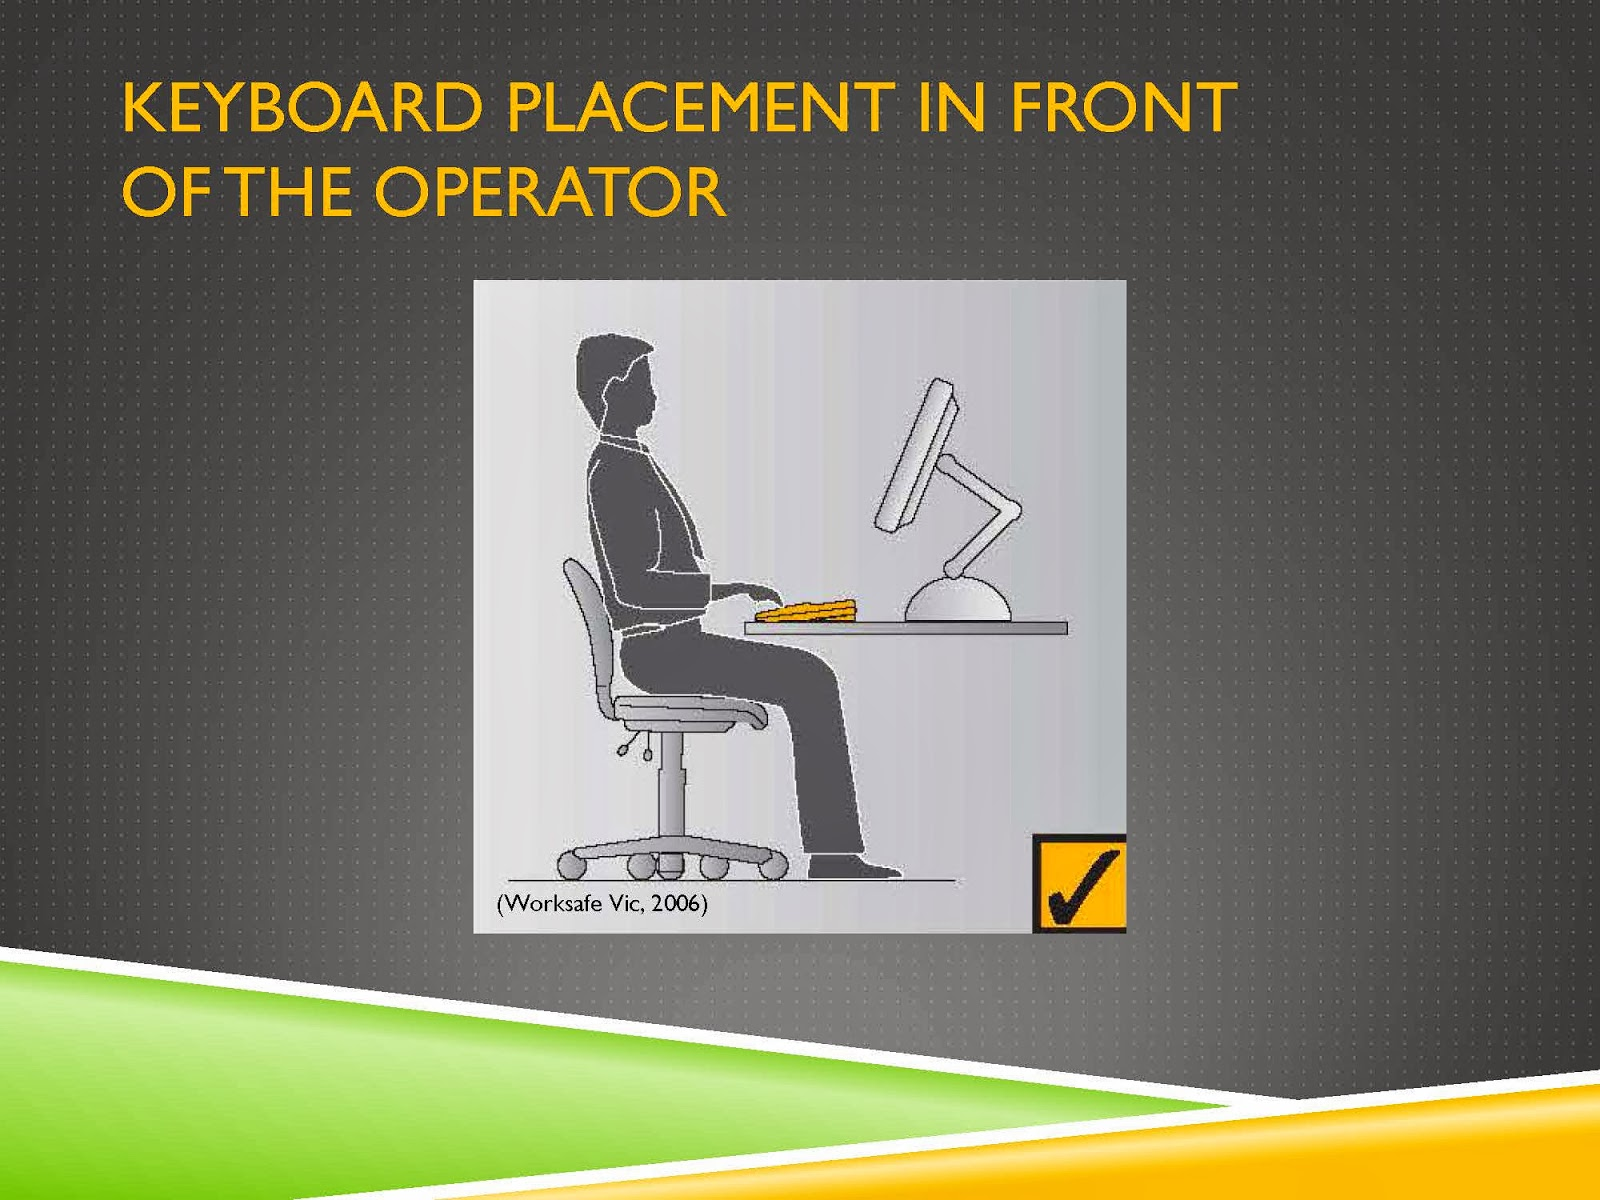 ERGONOMIC KEYBOARD PLACEMENT